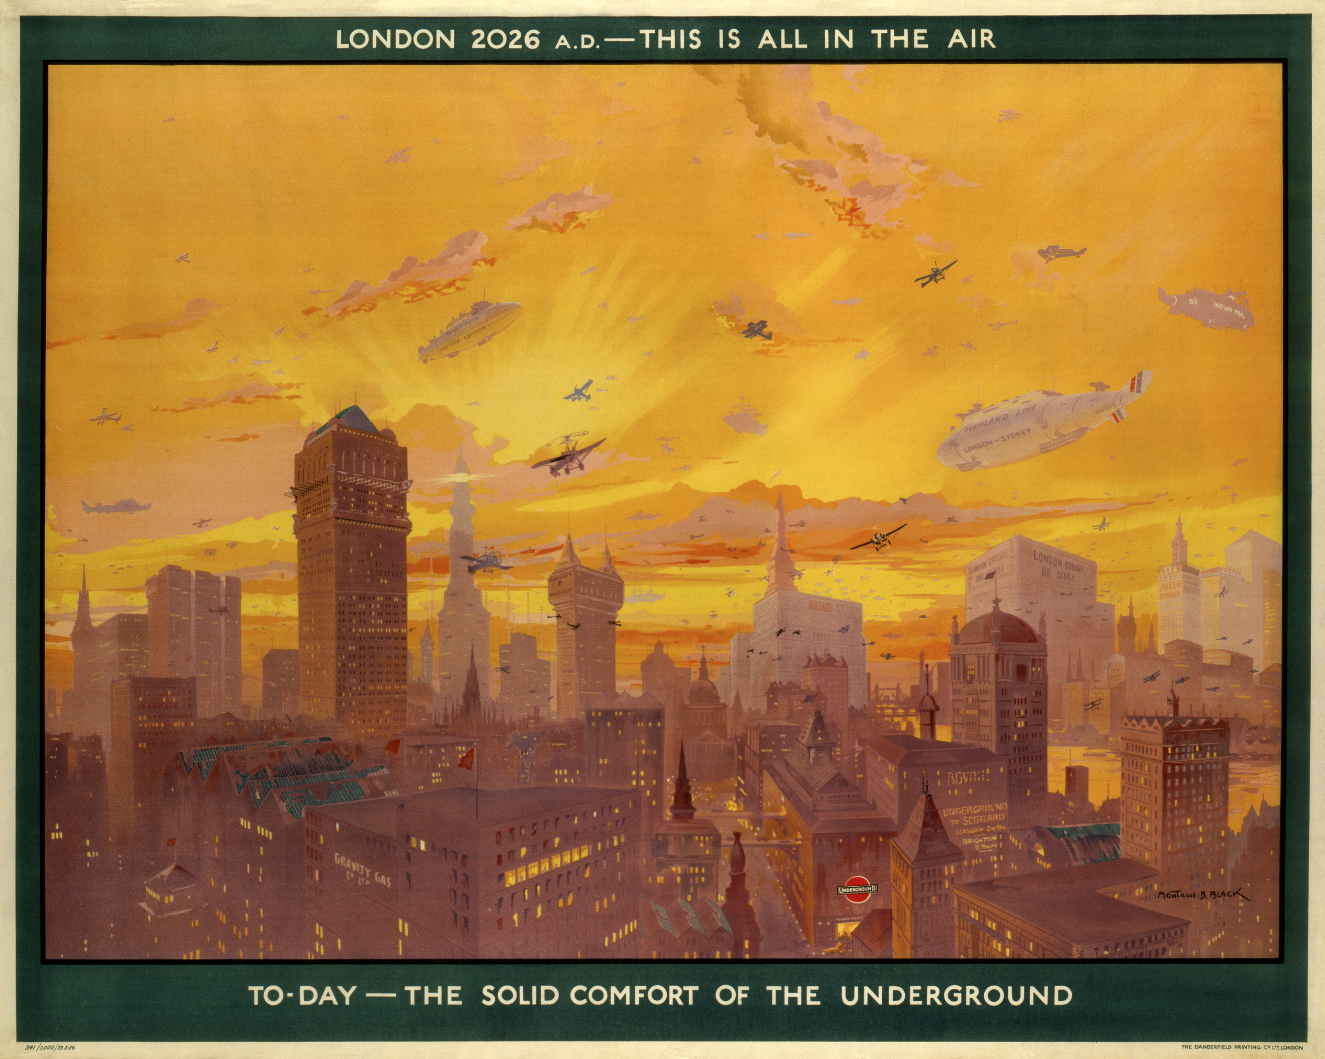 This 1926 Poster Predicts London's Transportation Future